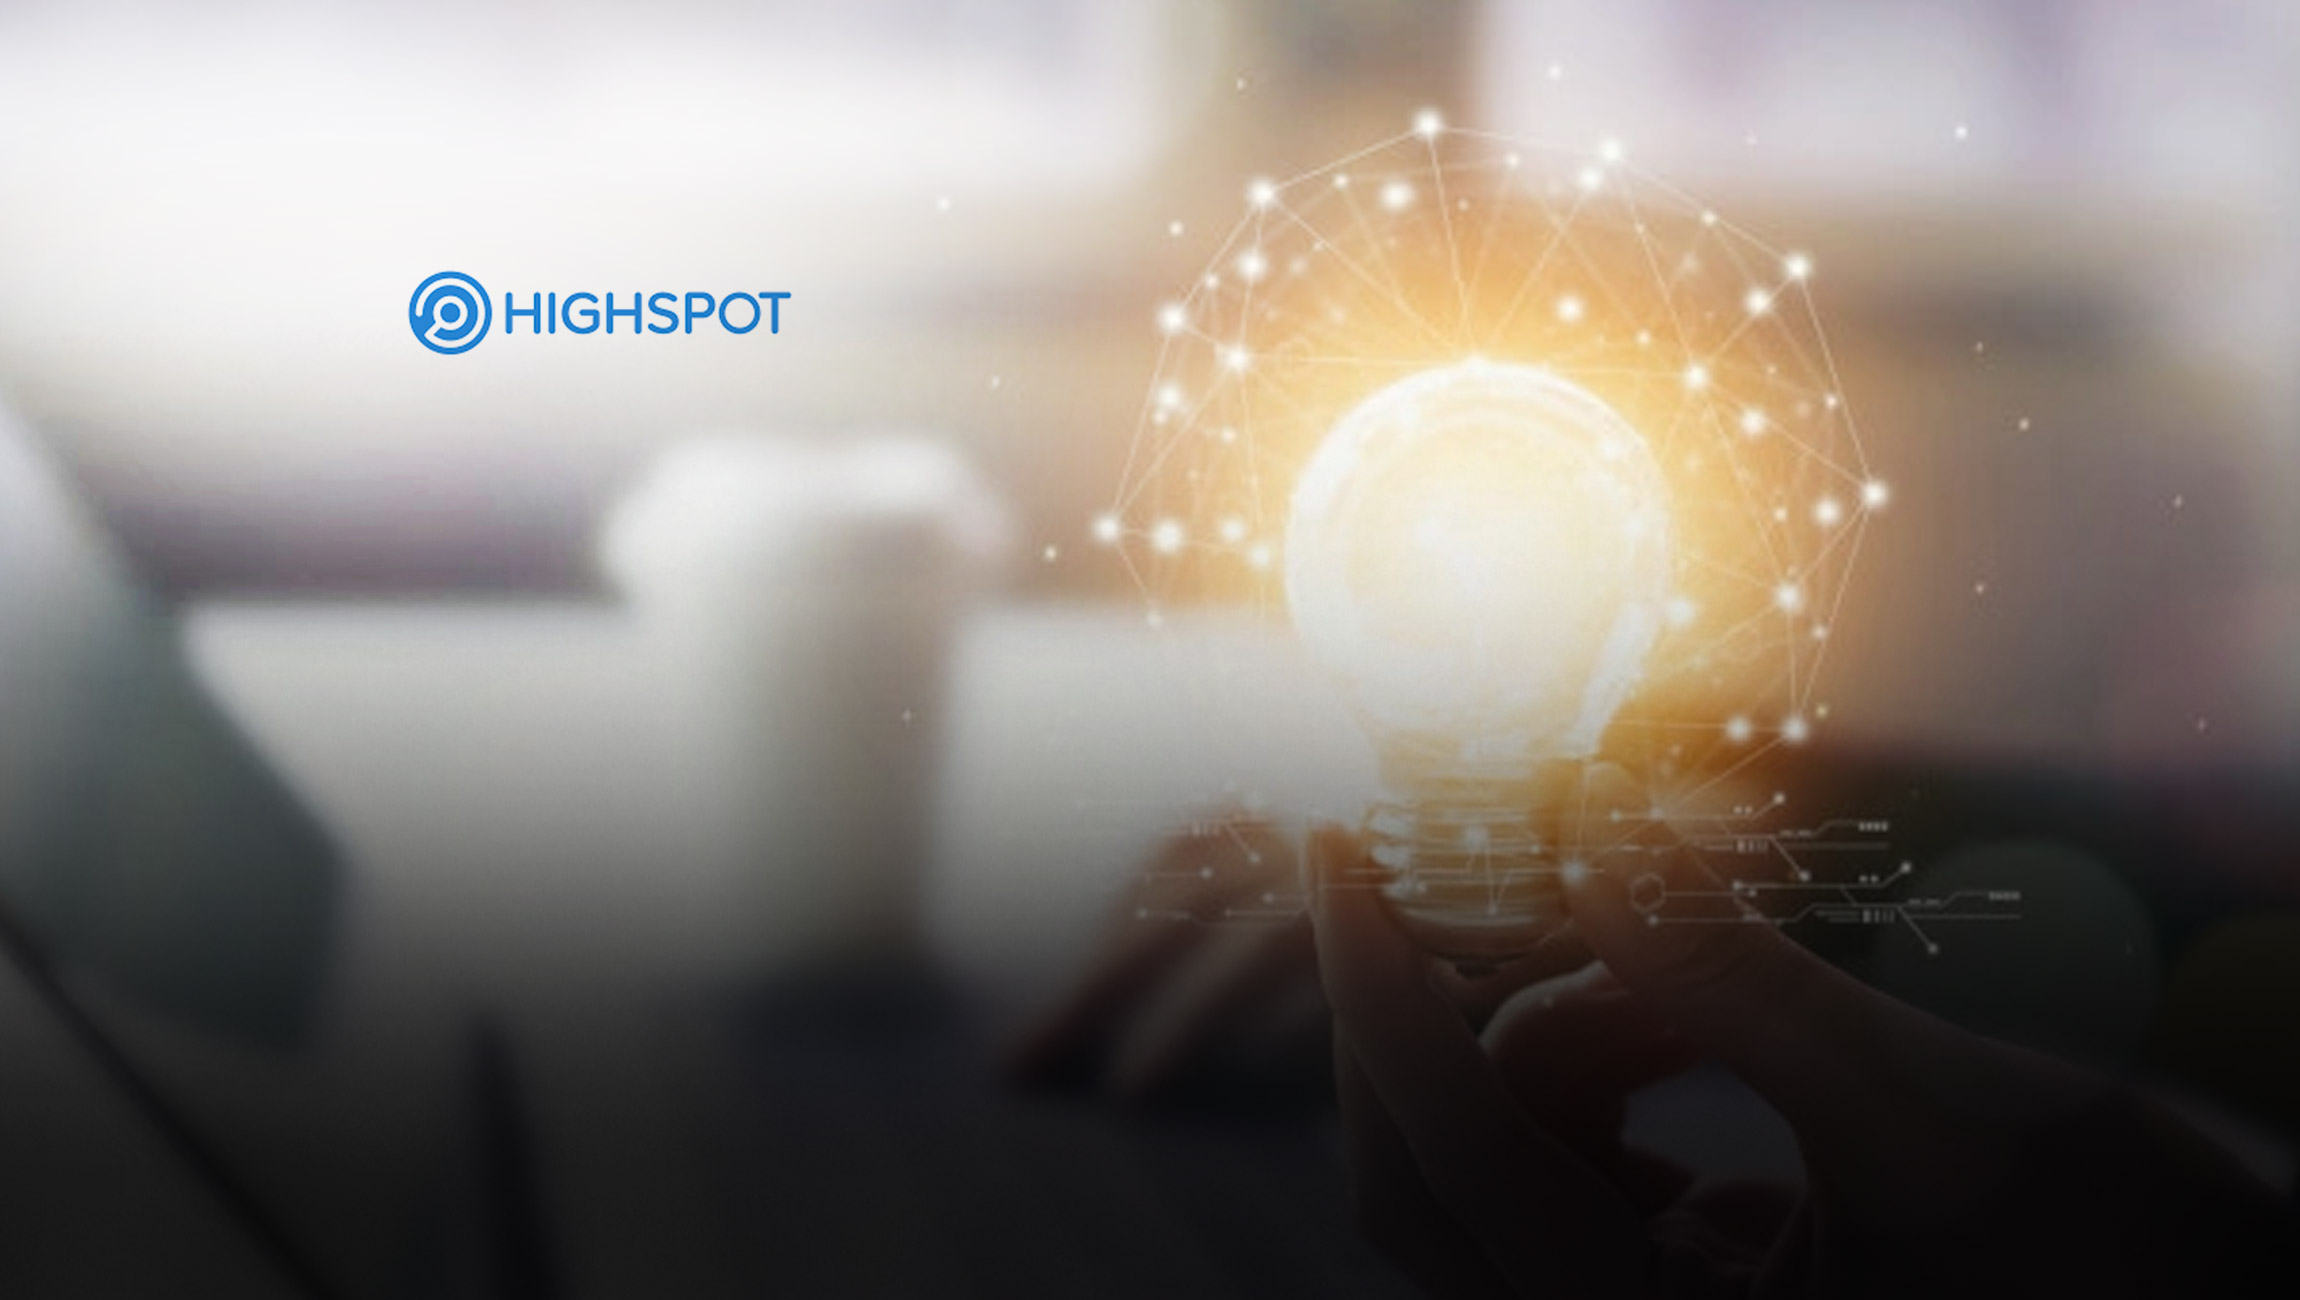 Highspot Increases the Performance of Sales Teams with Spring 2021 Release